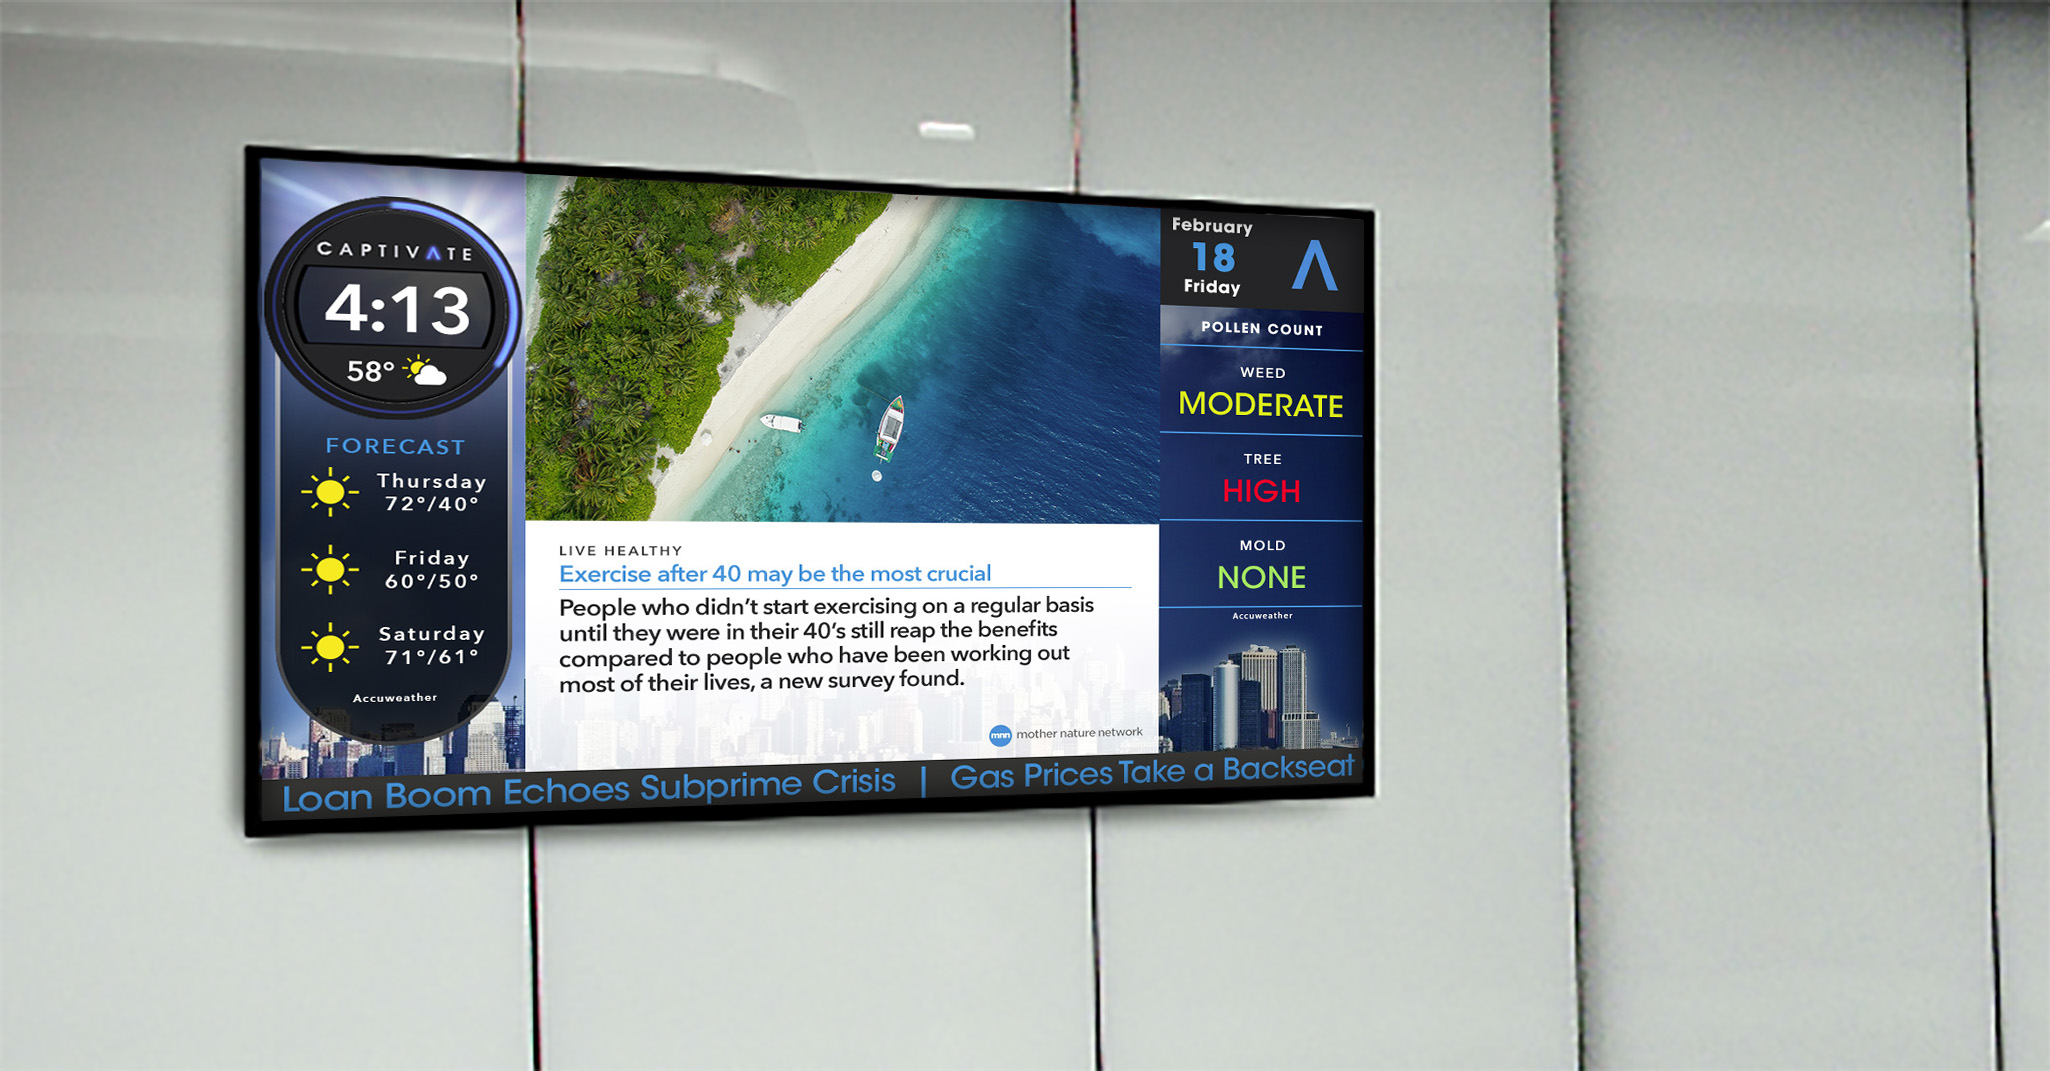 Captivate Office Digital Signage - Large Format Display Captivate Lobby Screen